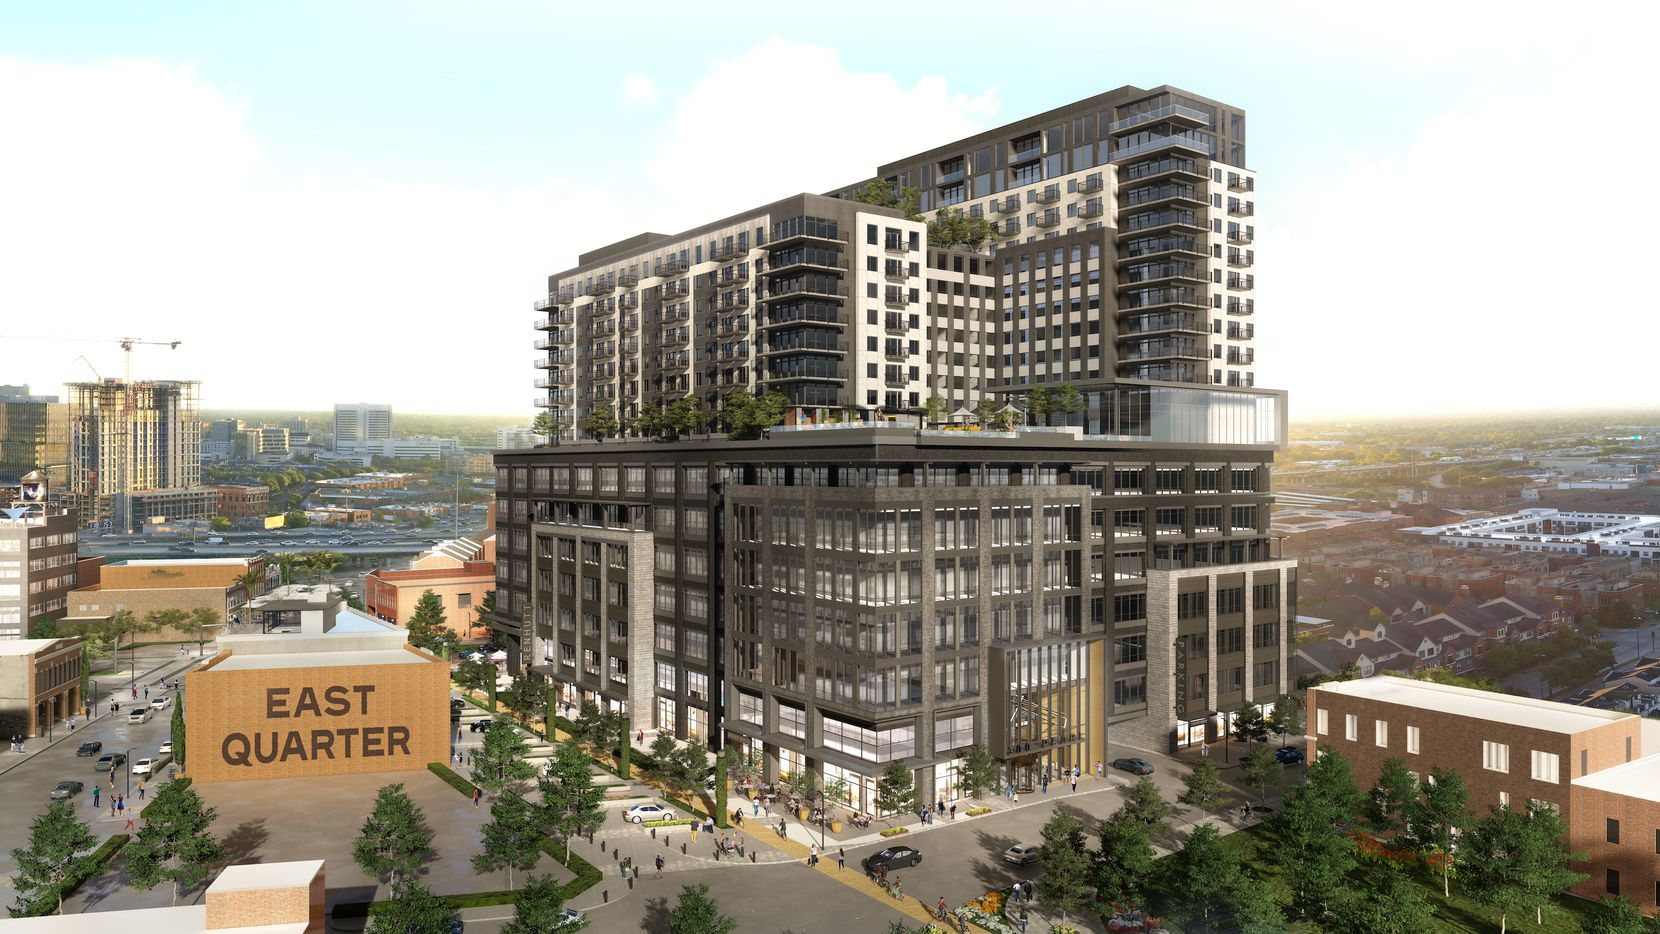 Developers of the East Quarter project on the eastern edge of downtown Dallas are planning a retail, office and residential tower.